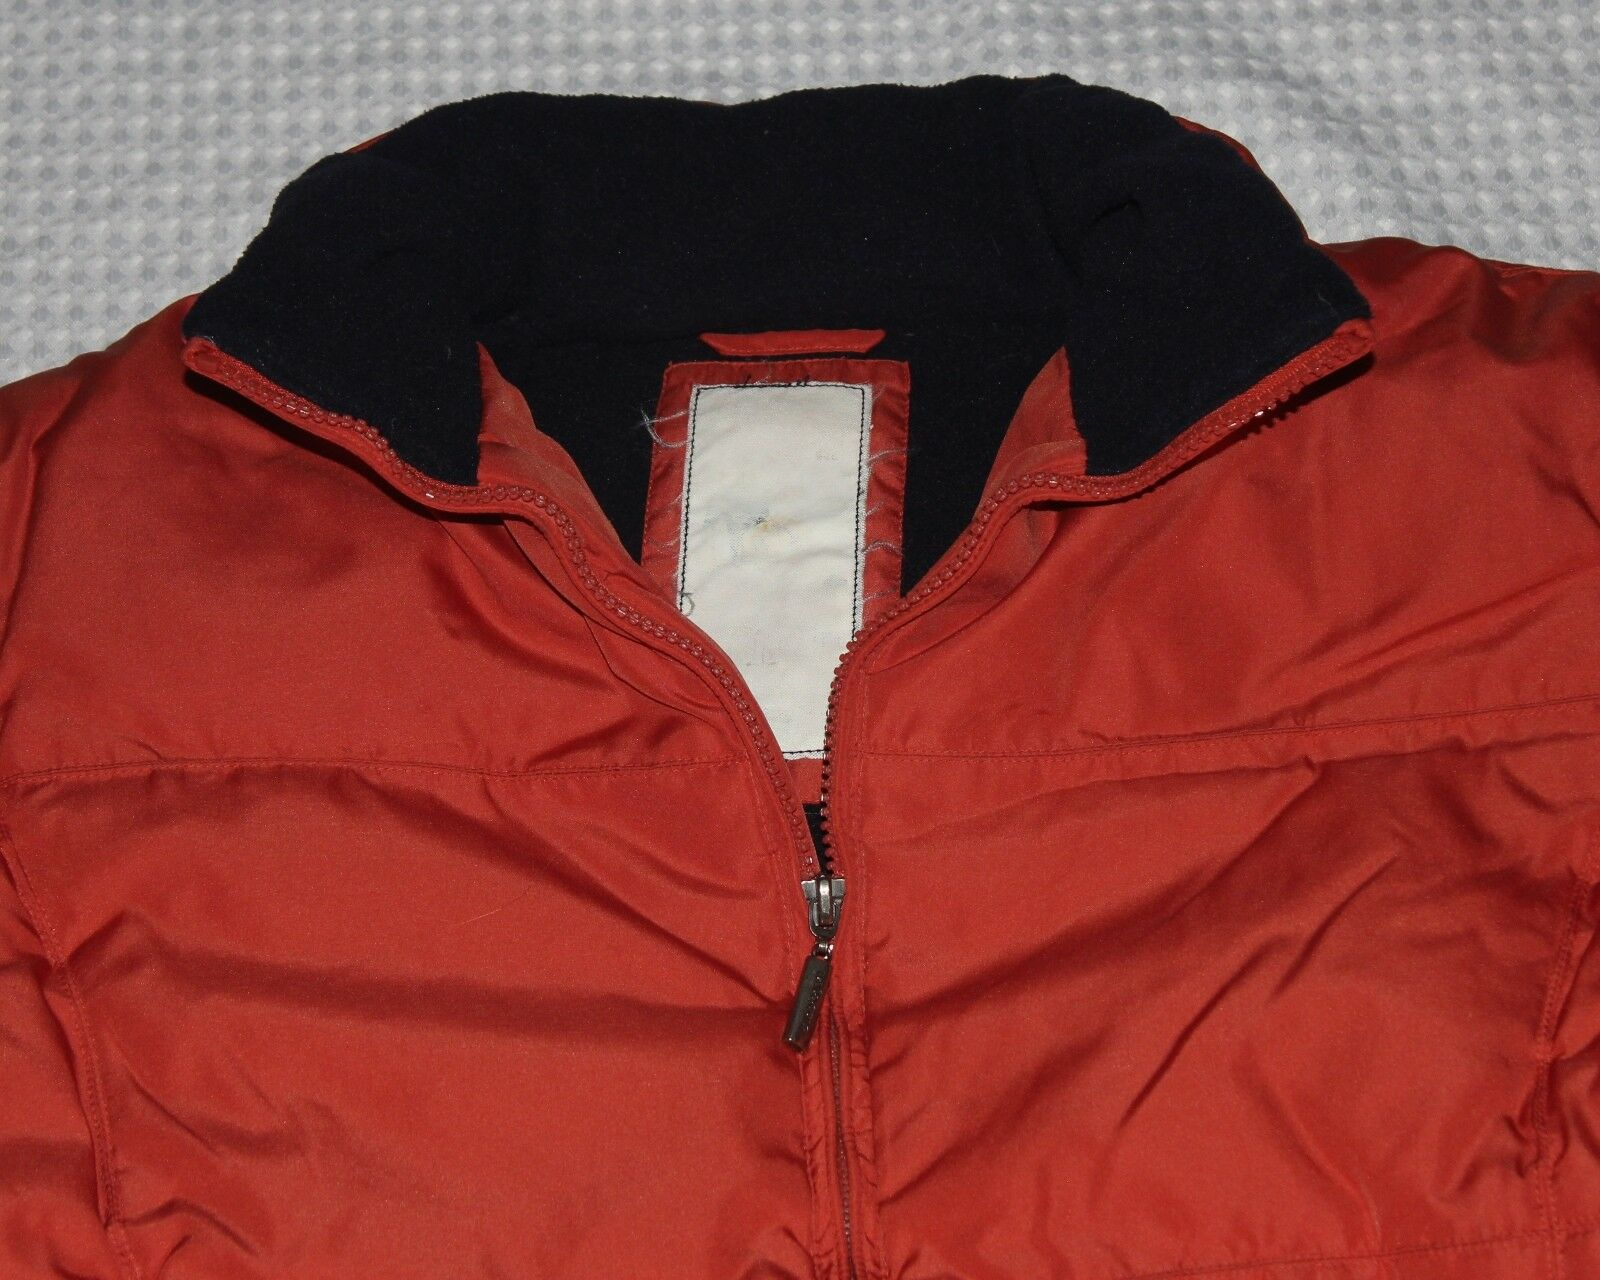 BUBBLE GUM WOMEN'S DOWN FILLED WINTER COAT SIZE M